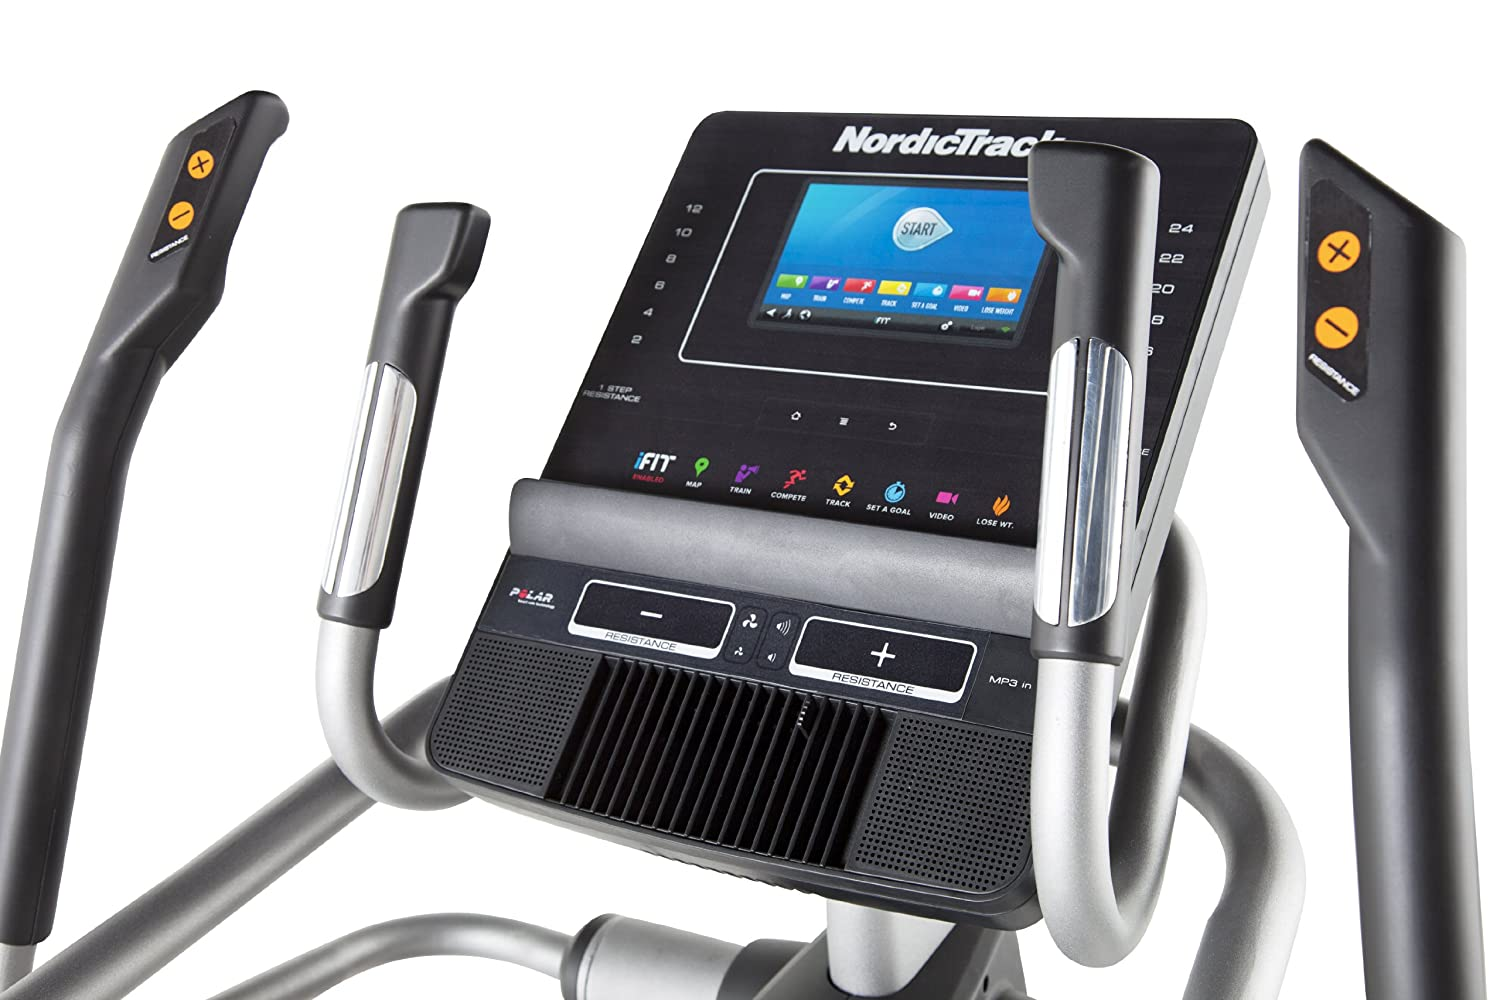 Amazon.com : Nordic Track A.C.T. Commercial 7 Elliptical Trainer : Nordic Trac Act Elliptical : Sports & Outdoors